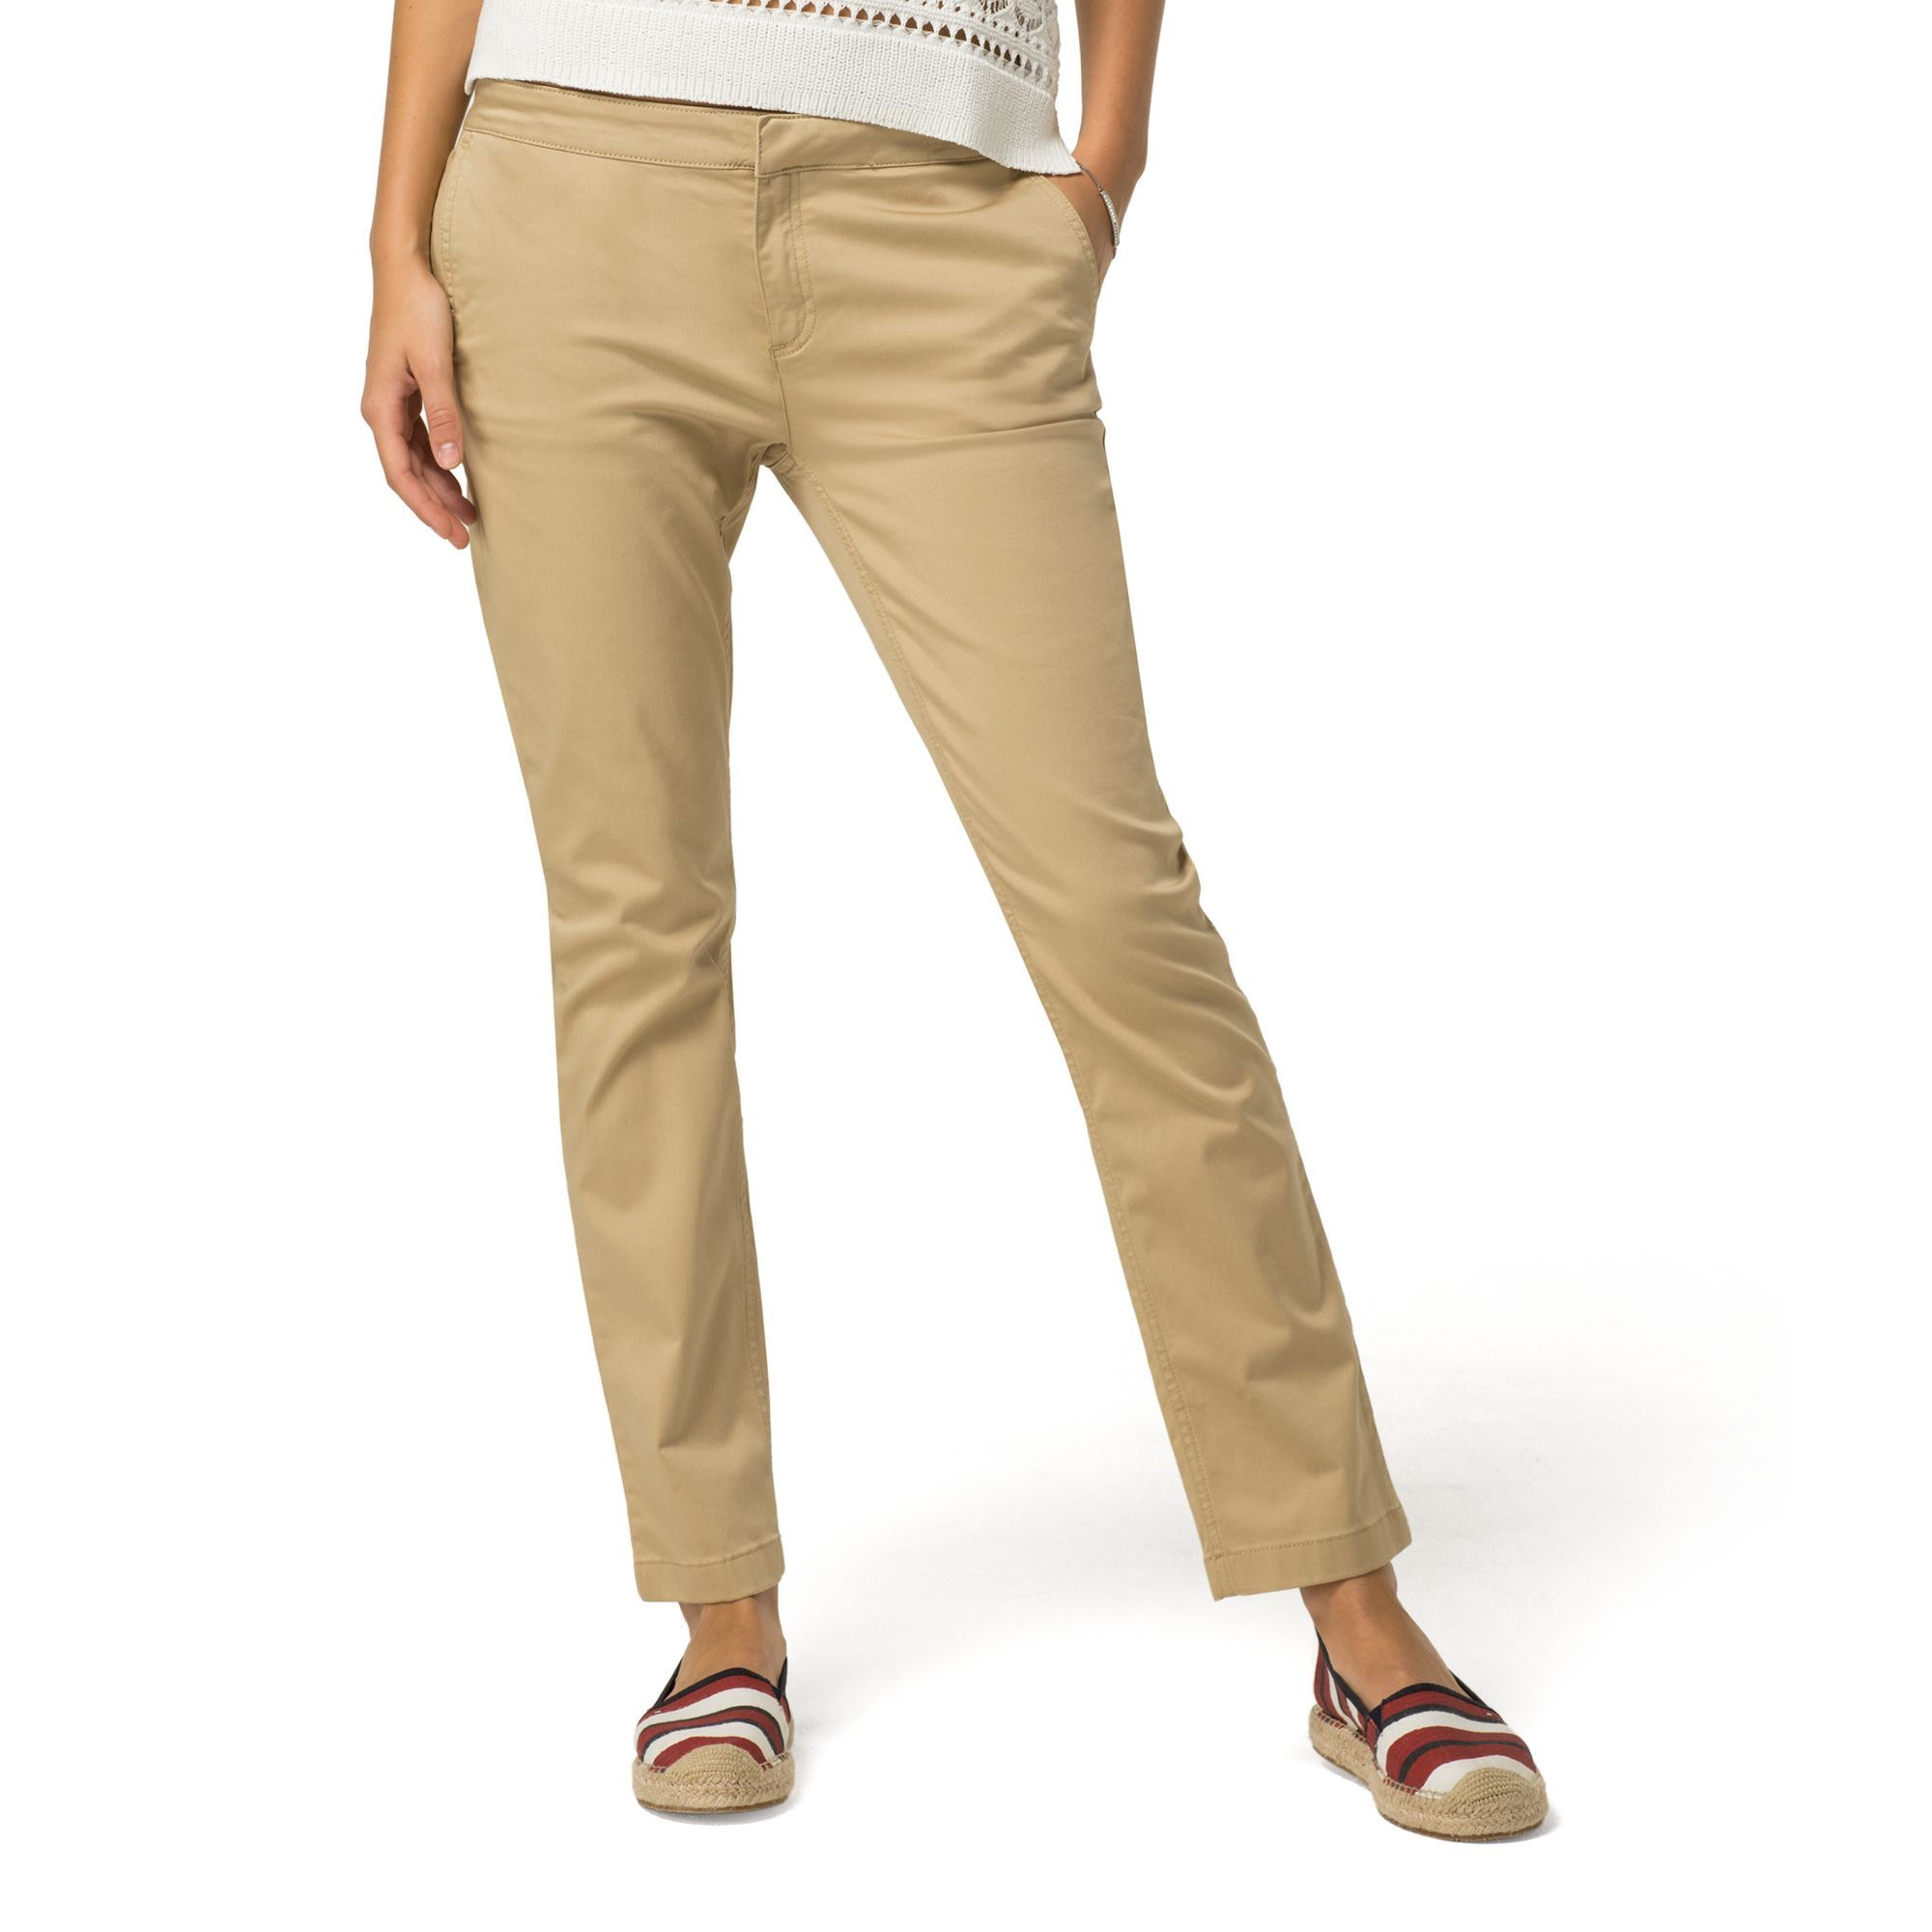 Relax Fit Chino - Sales Up to -50% Tommy Hilfiger Buy Cheap Authentic Buy Cheap Pay With Paypal Cheapest Price Shop For Cheap Online In China Online HNpQ2pQes8